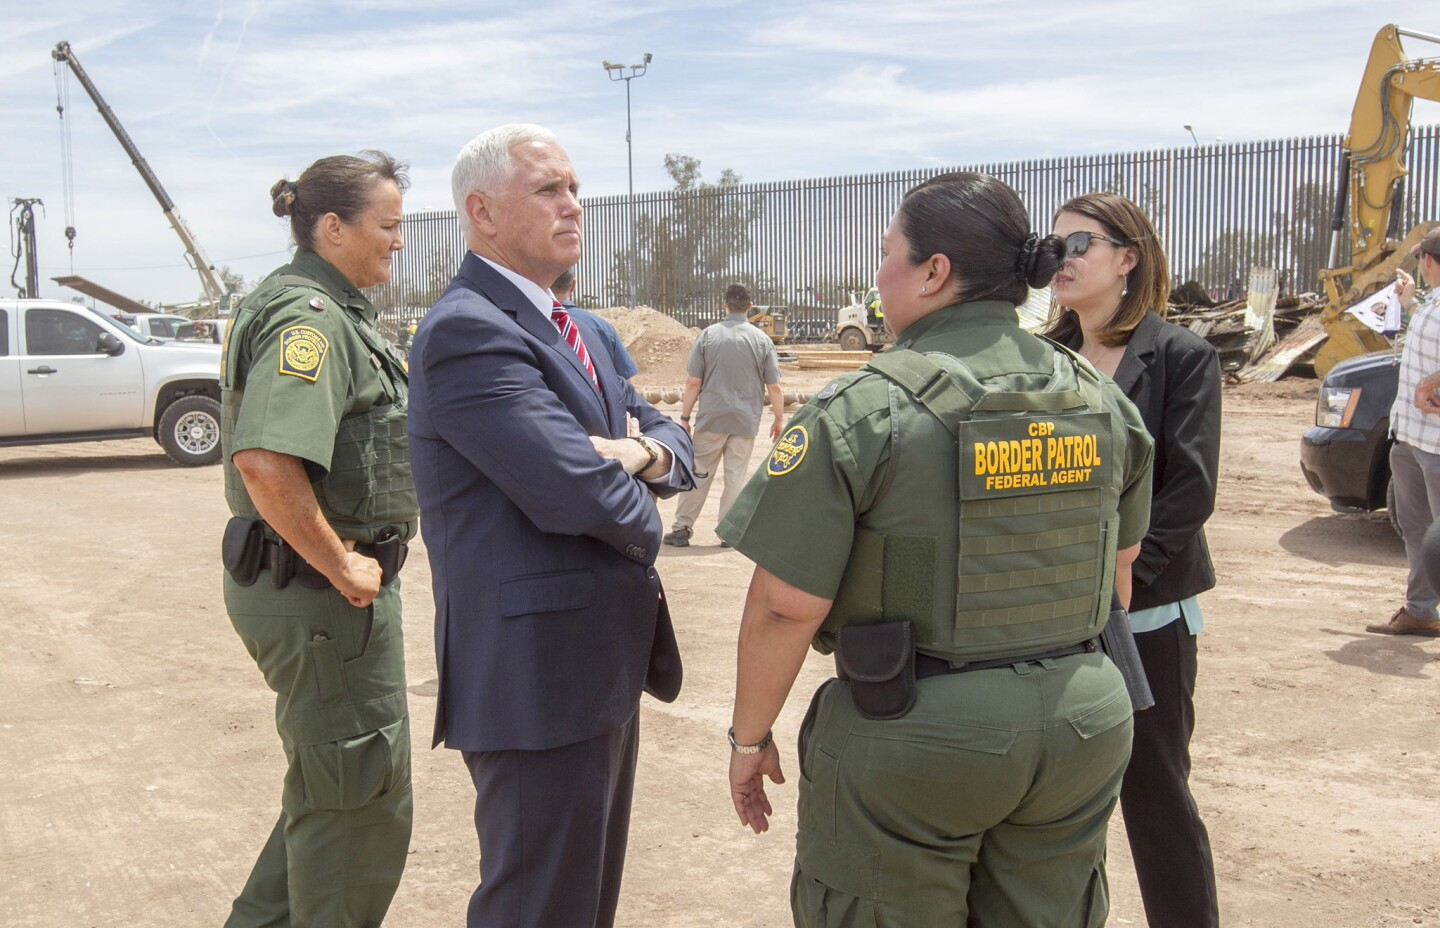 Vice President Mike Pence, center, meets with Border Patrol officials in Calexico on April 30.